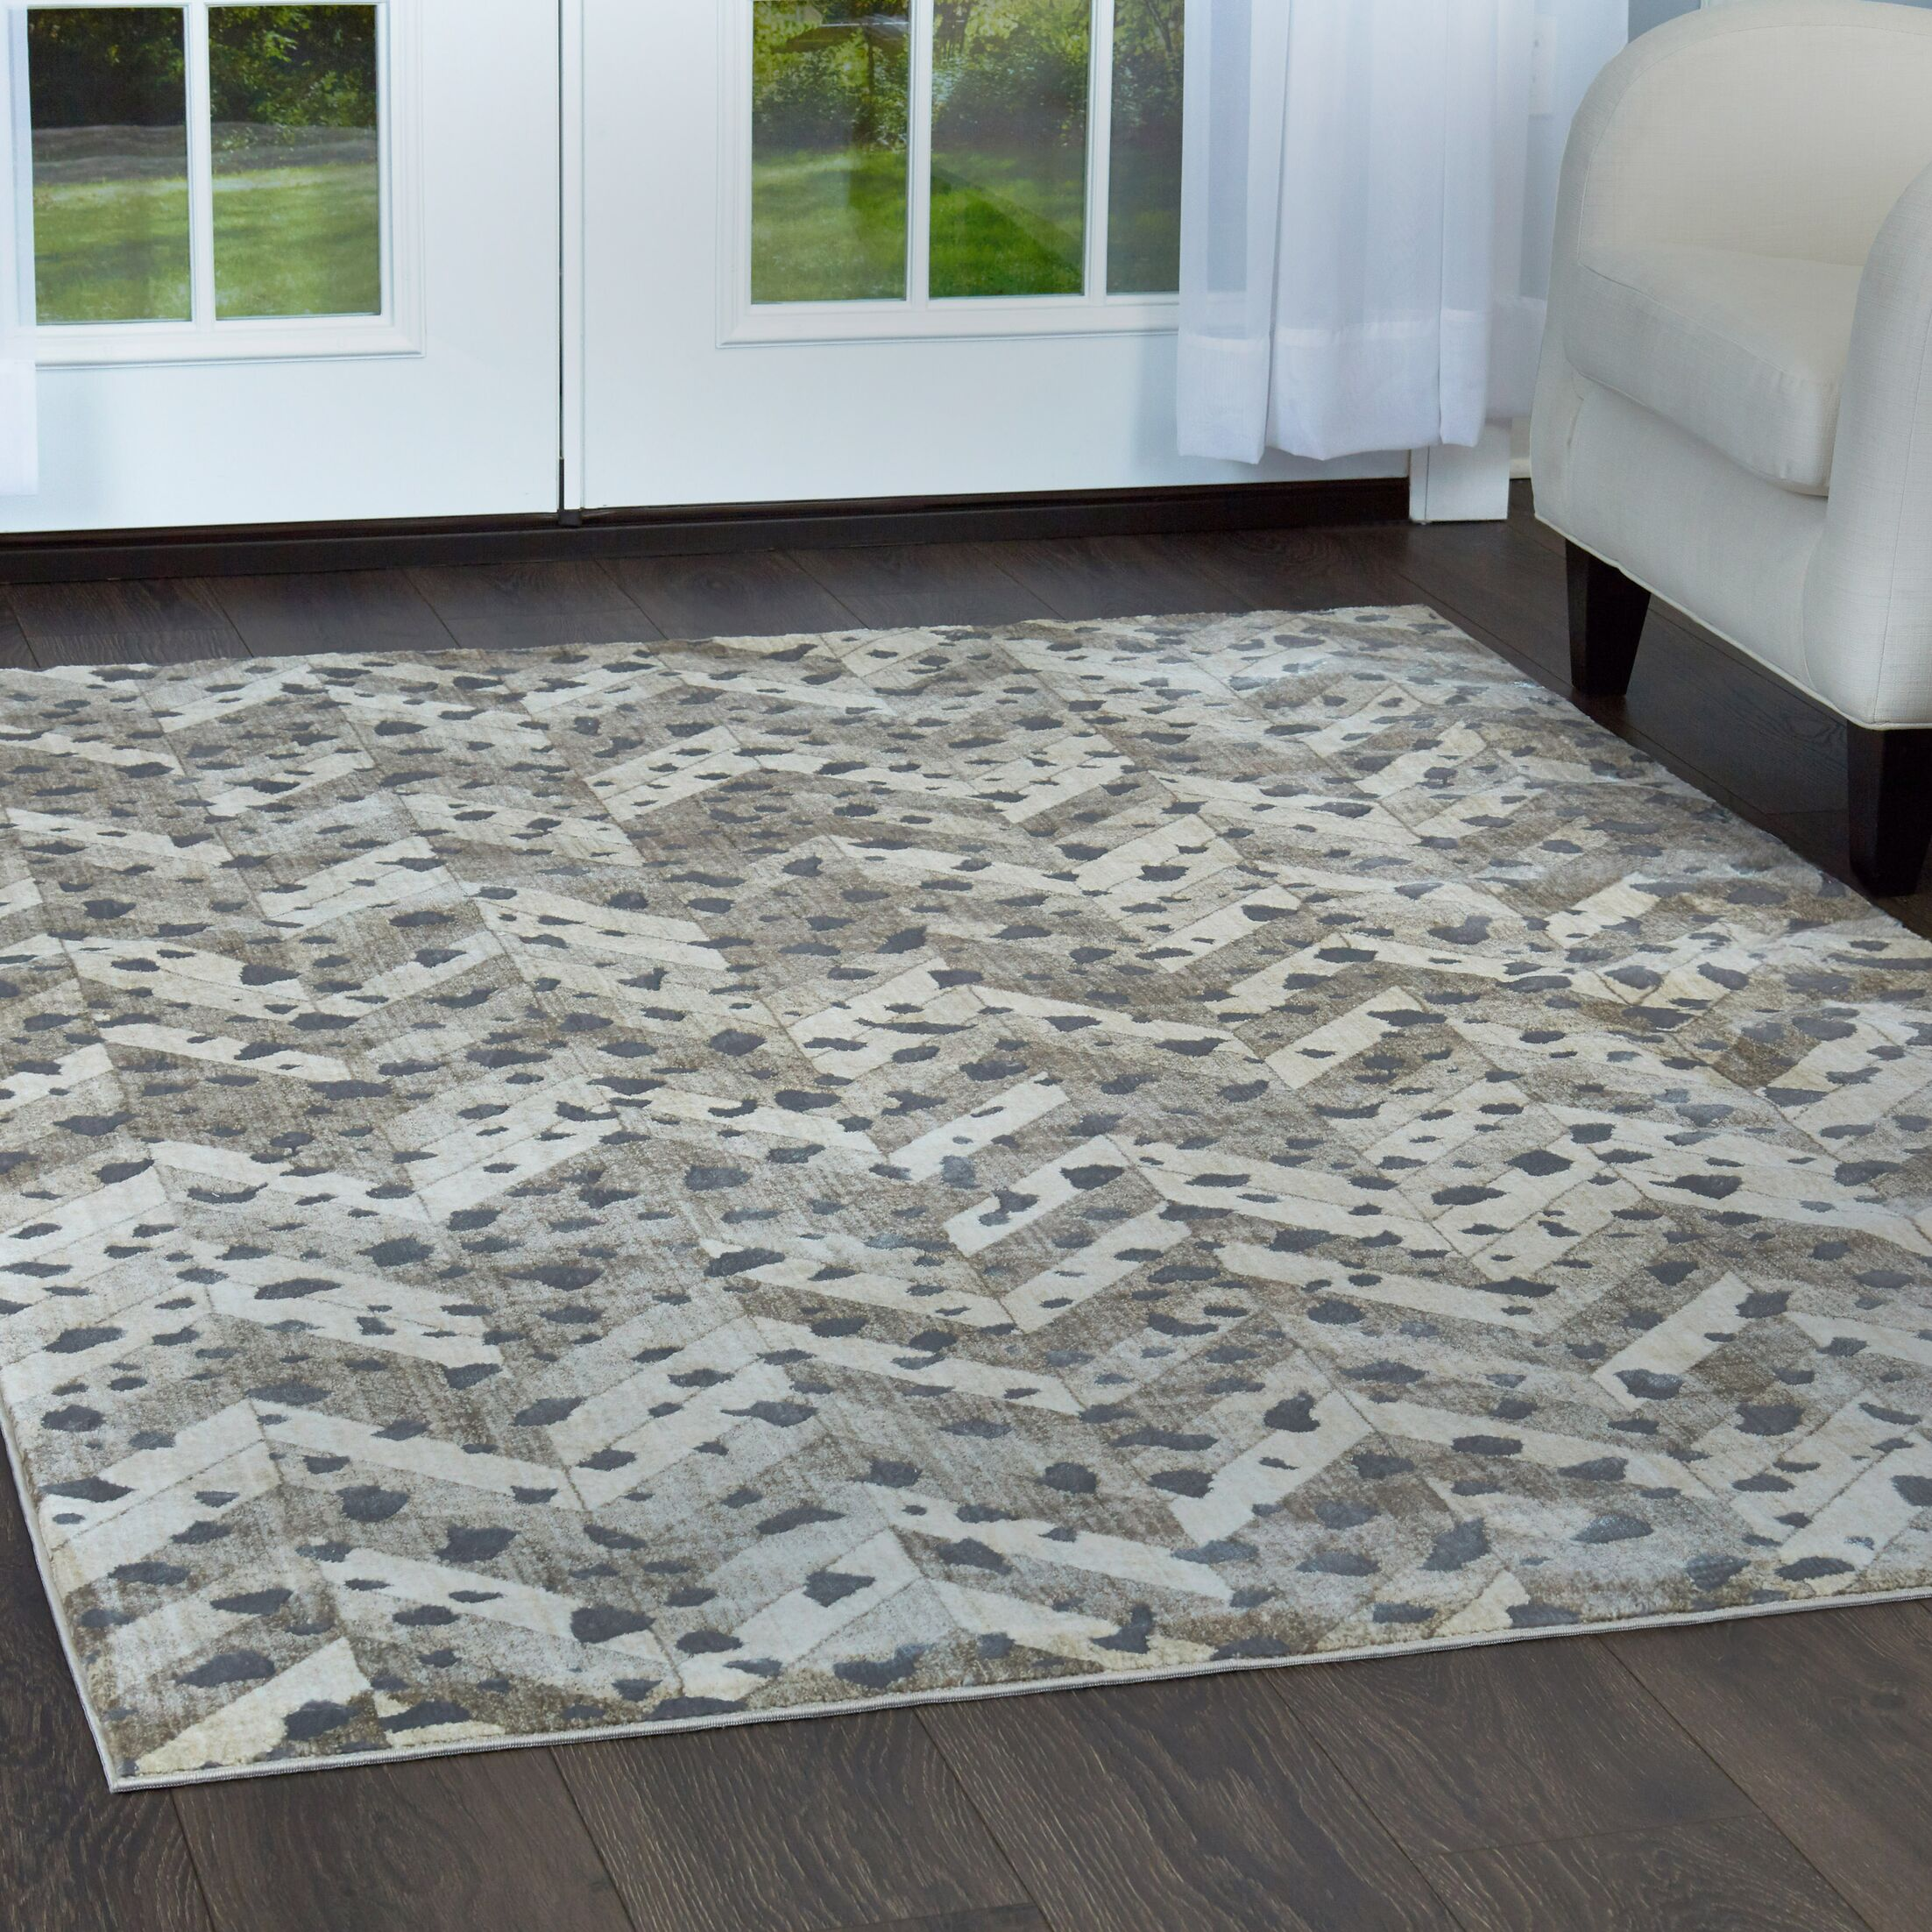 Nicole Miller Nagala Mahal Taupe Area Rug Rug Size: Rectangle 5'3